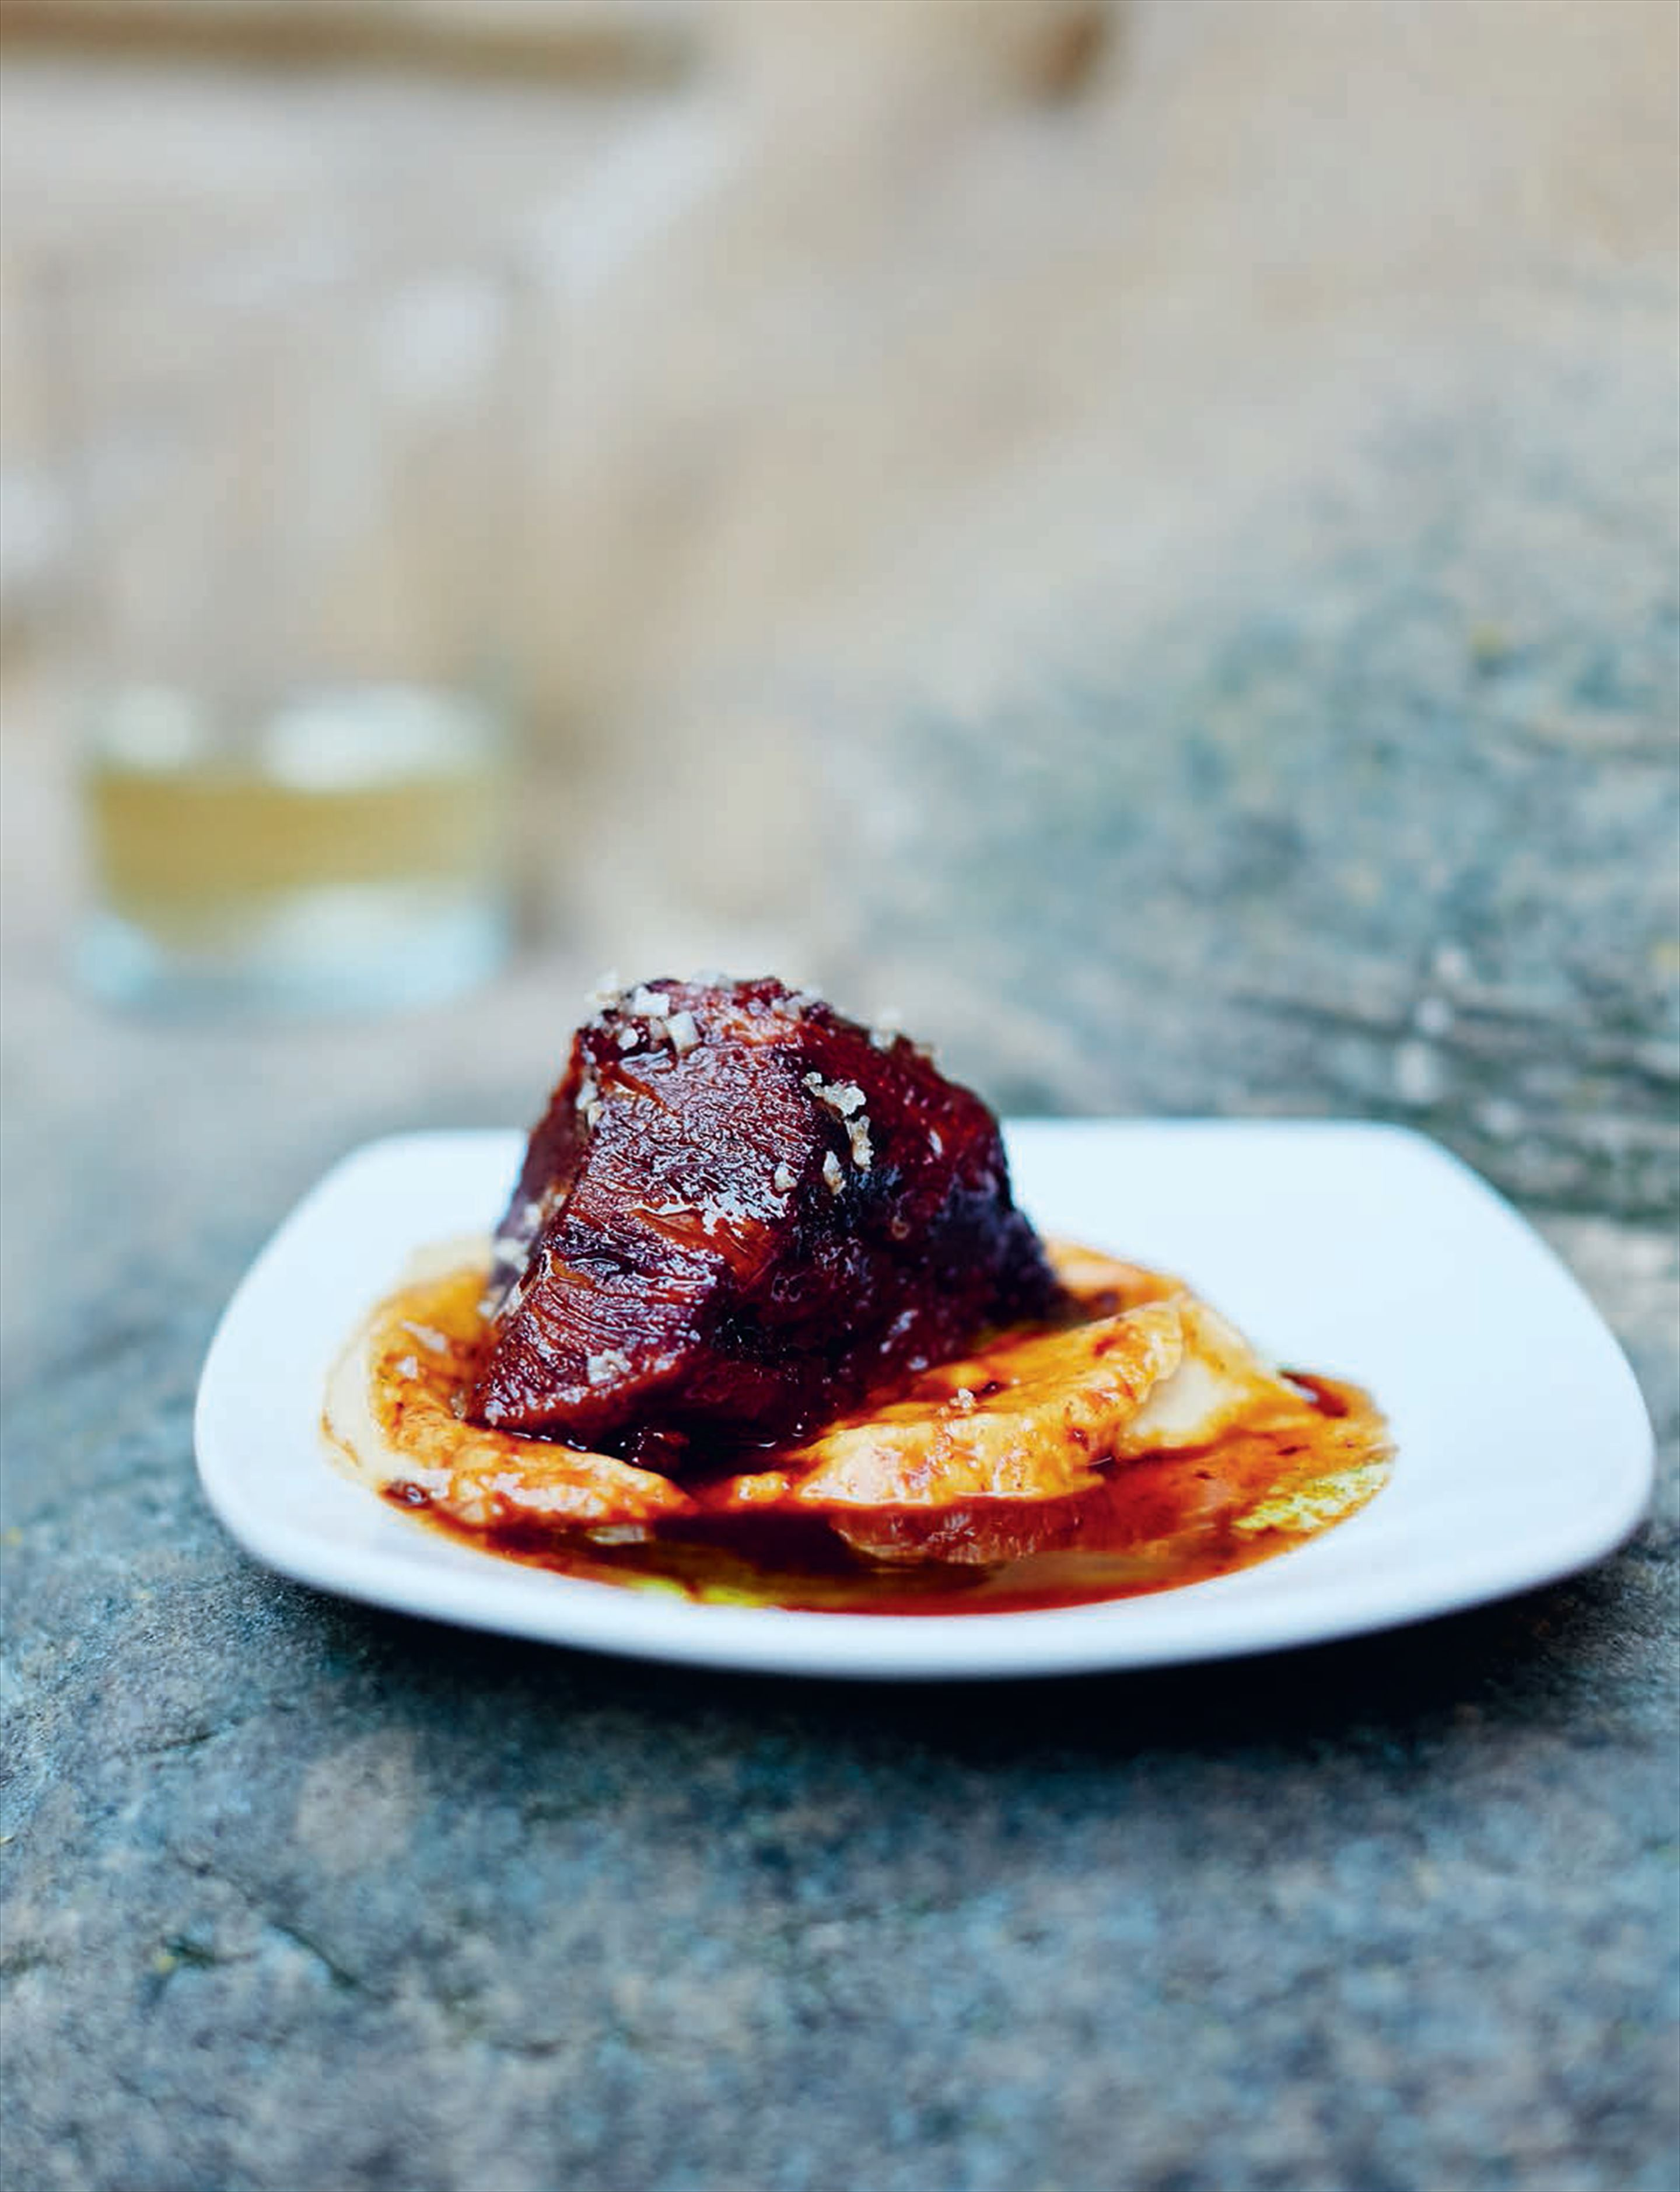 Beef cheeks in red wine sauce with cauliflower purée